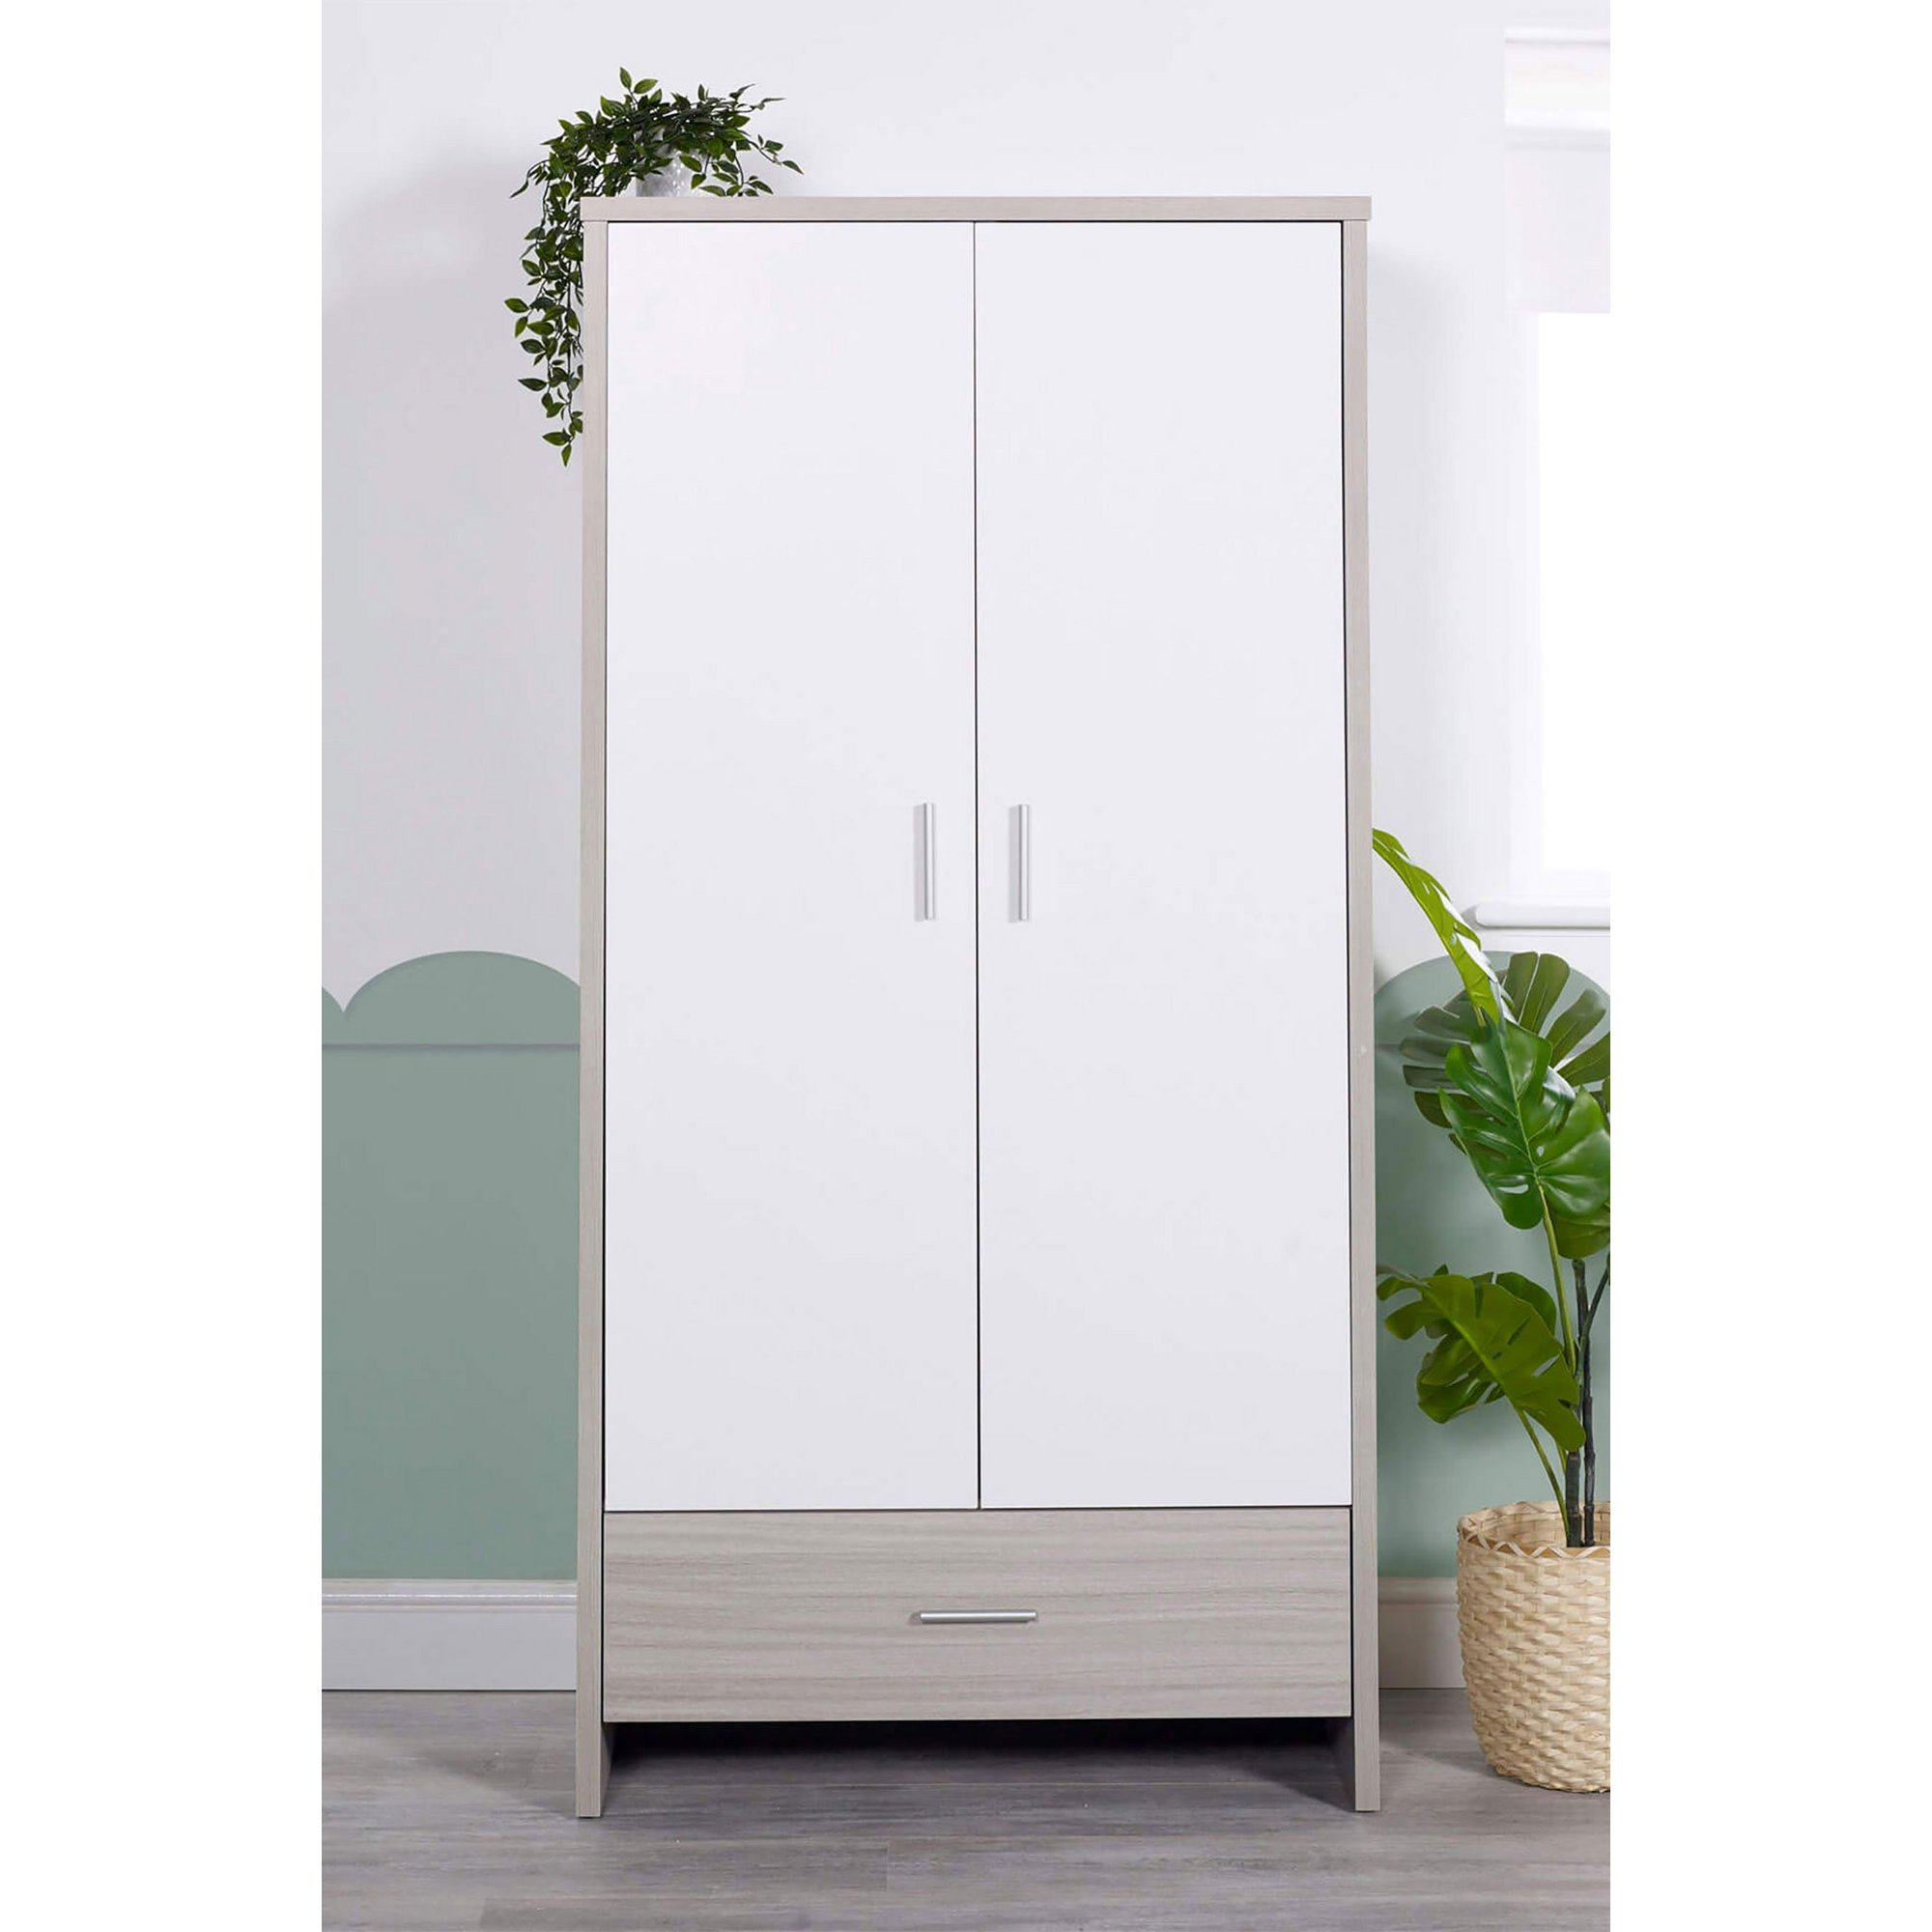 Image of Ickle BubbaAsh Grey and White Trend Pembrey Wardrobe